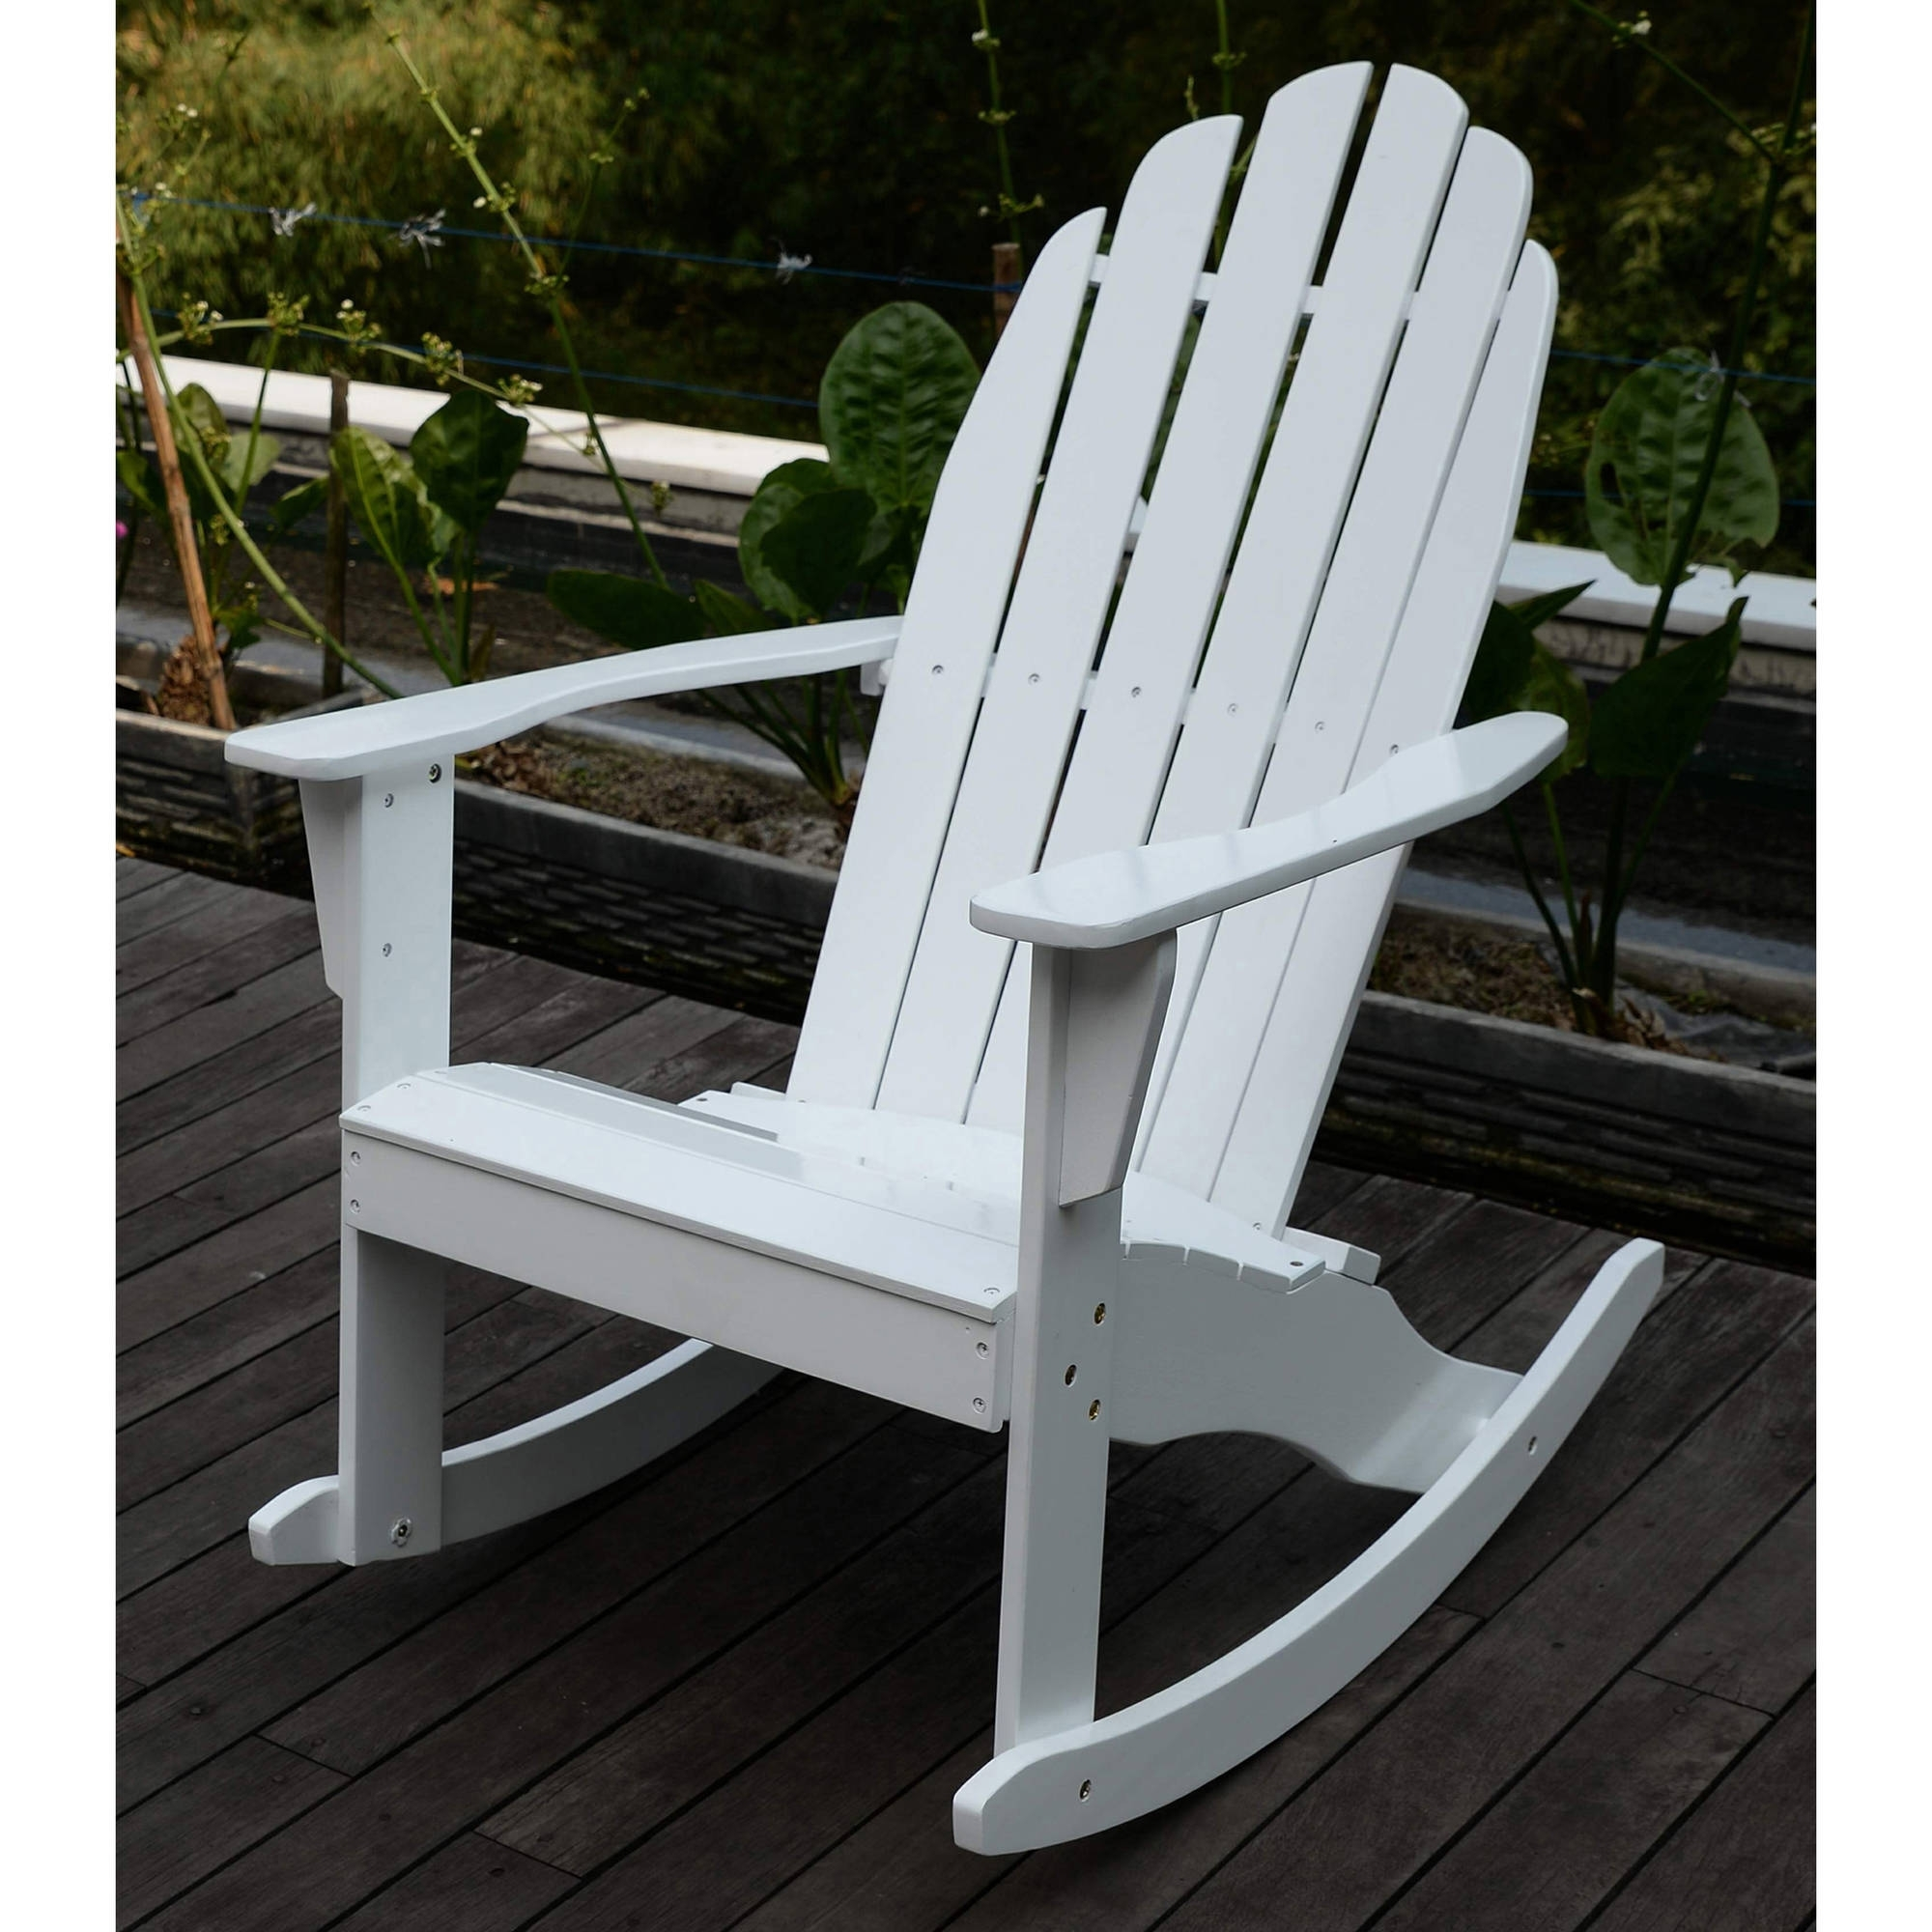 Rocking Chairs At Walmart Within Trendy Adirondack Rocking Chair, White – Walmart (View 13 of 15)